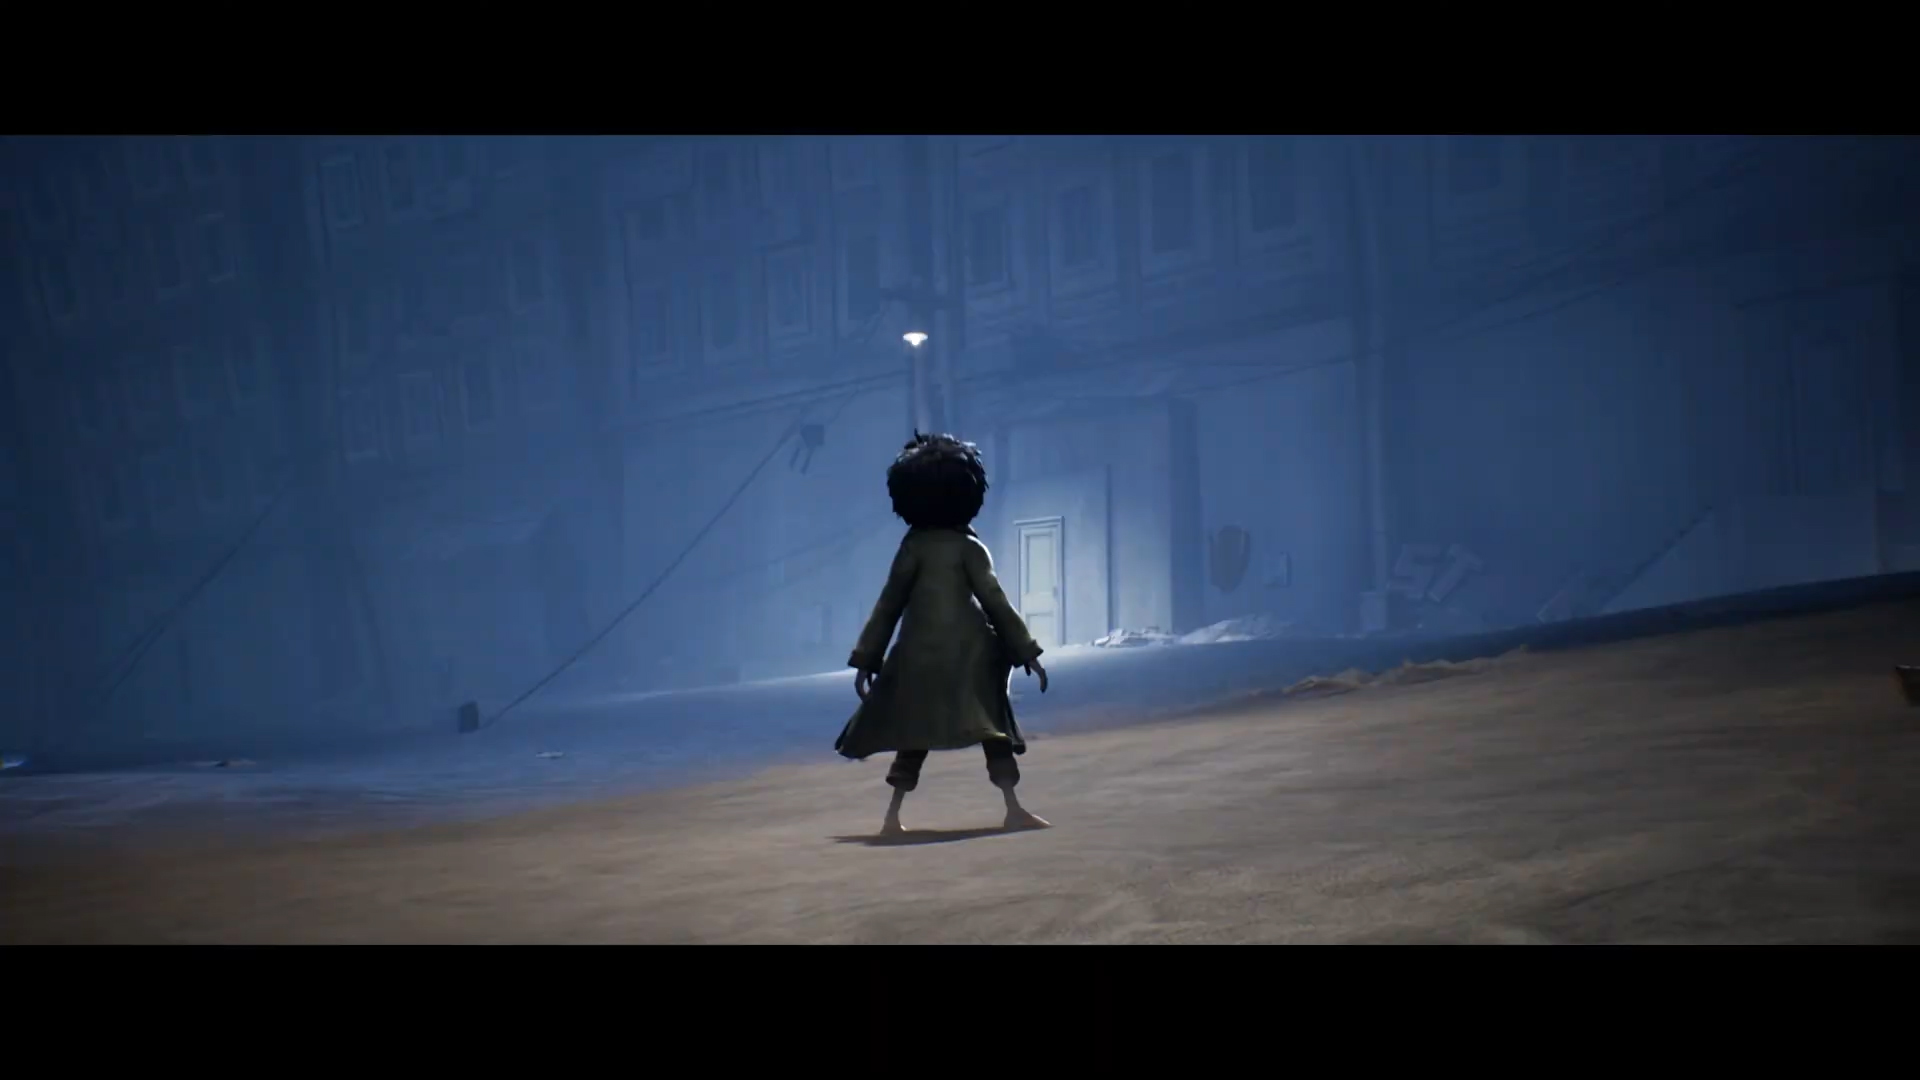 Little Nightmares 2 Will Explore The Wider World And Lore